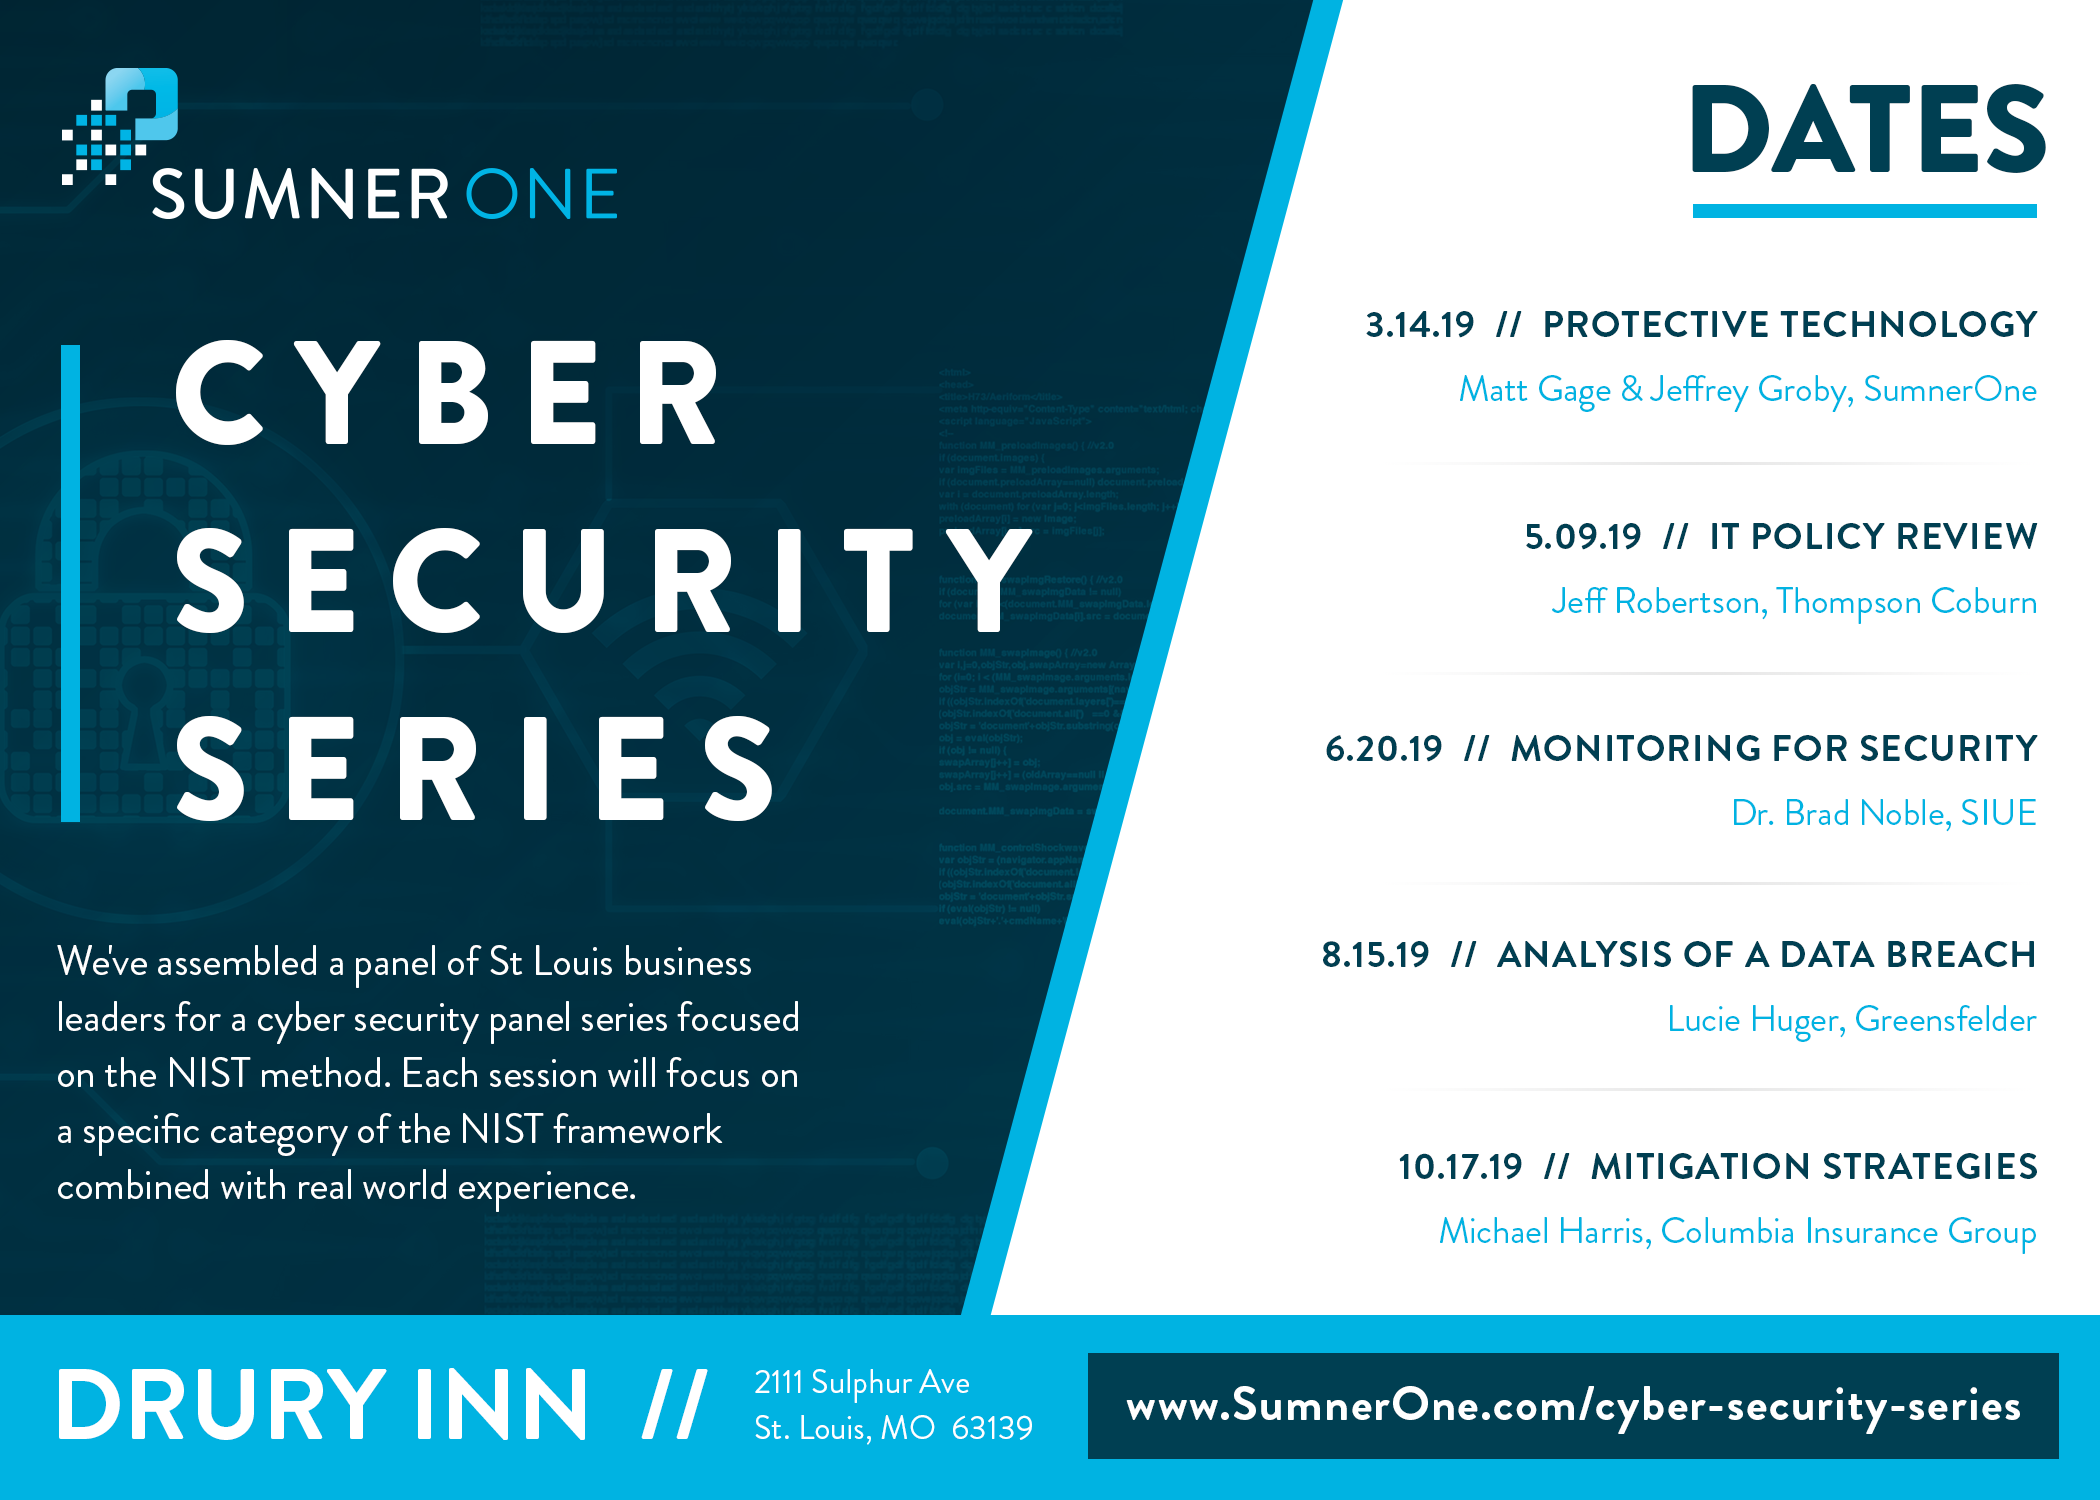 Cyber Security Series for Business Leaders